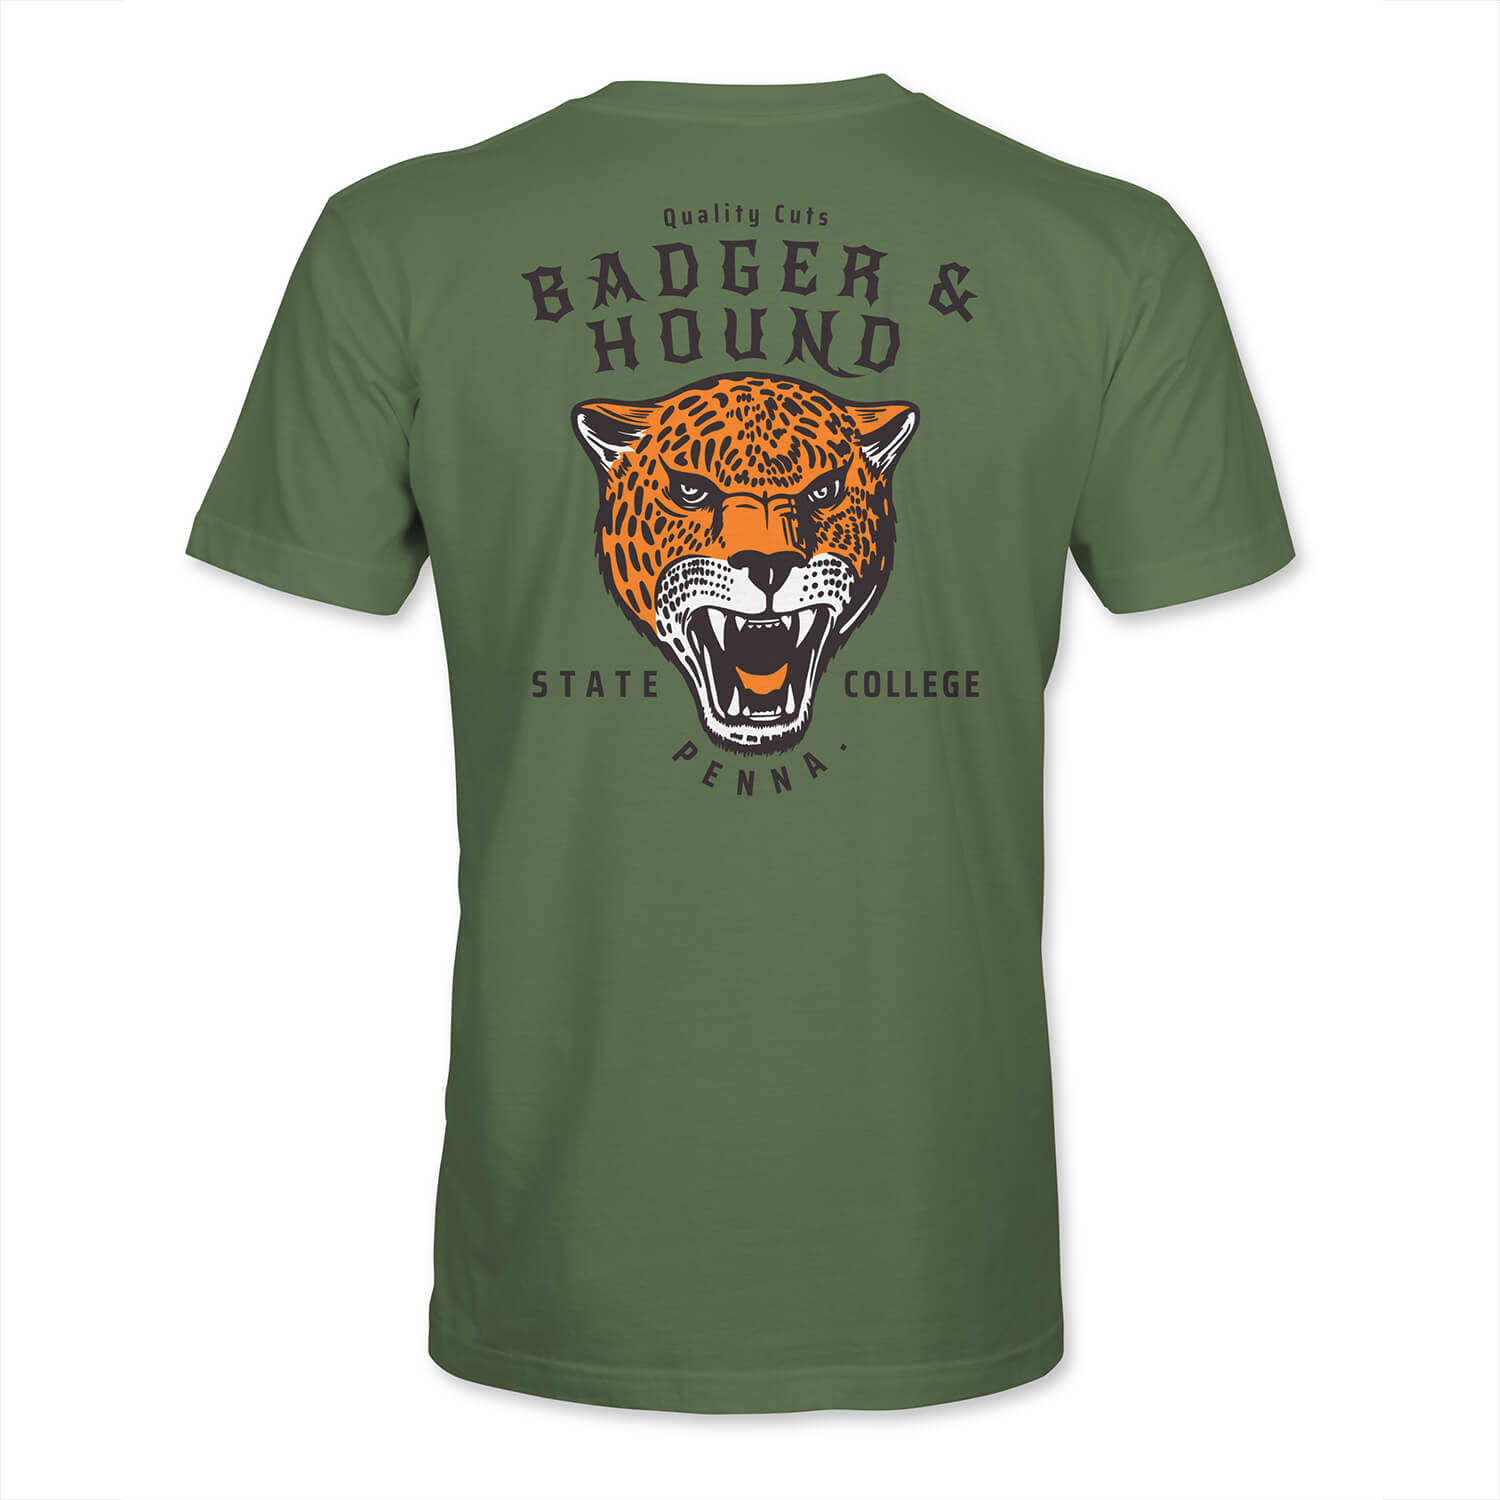 Badger & Hound Tiger Tee